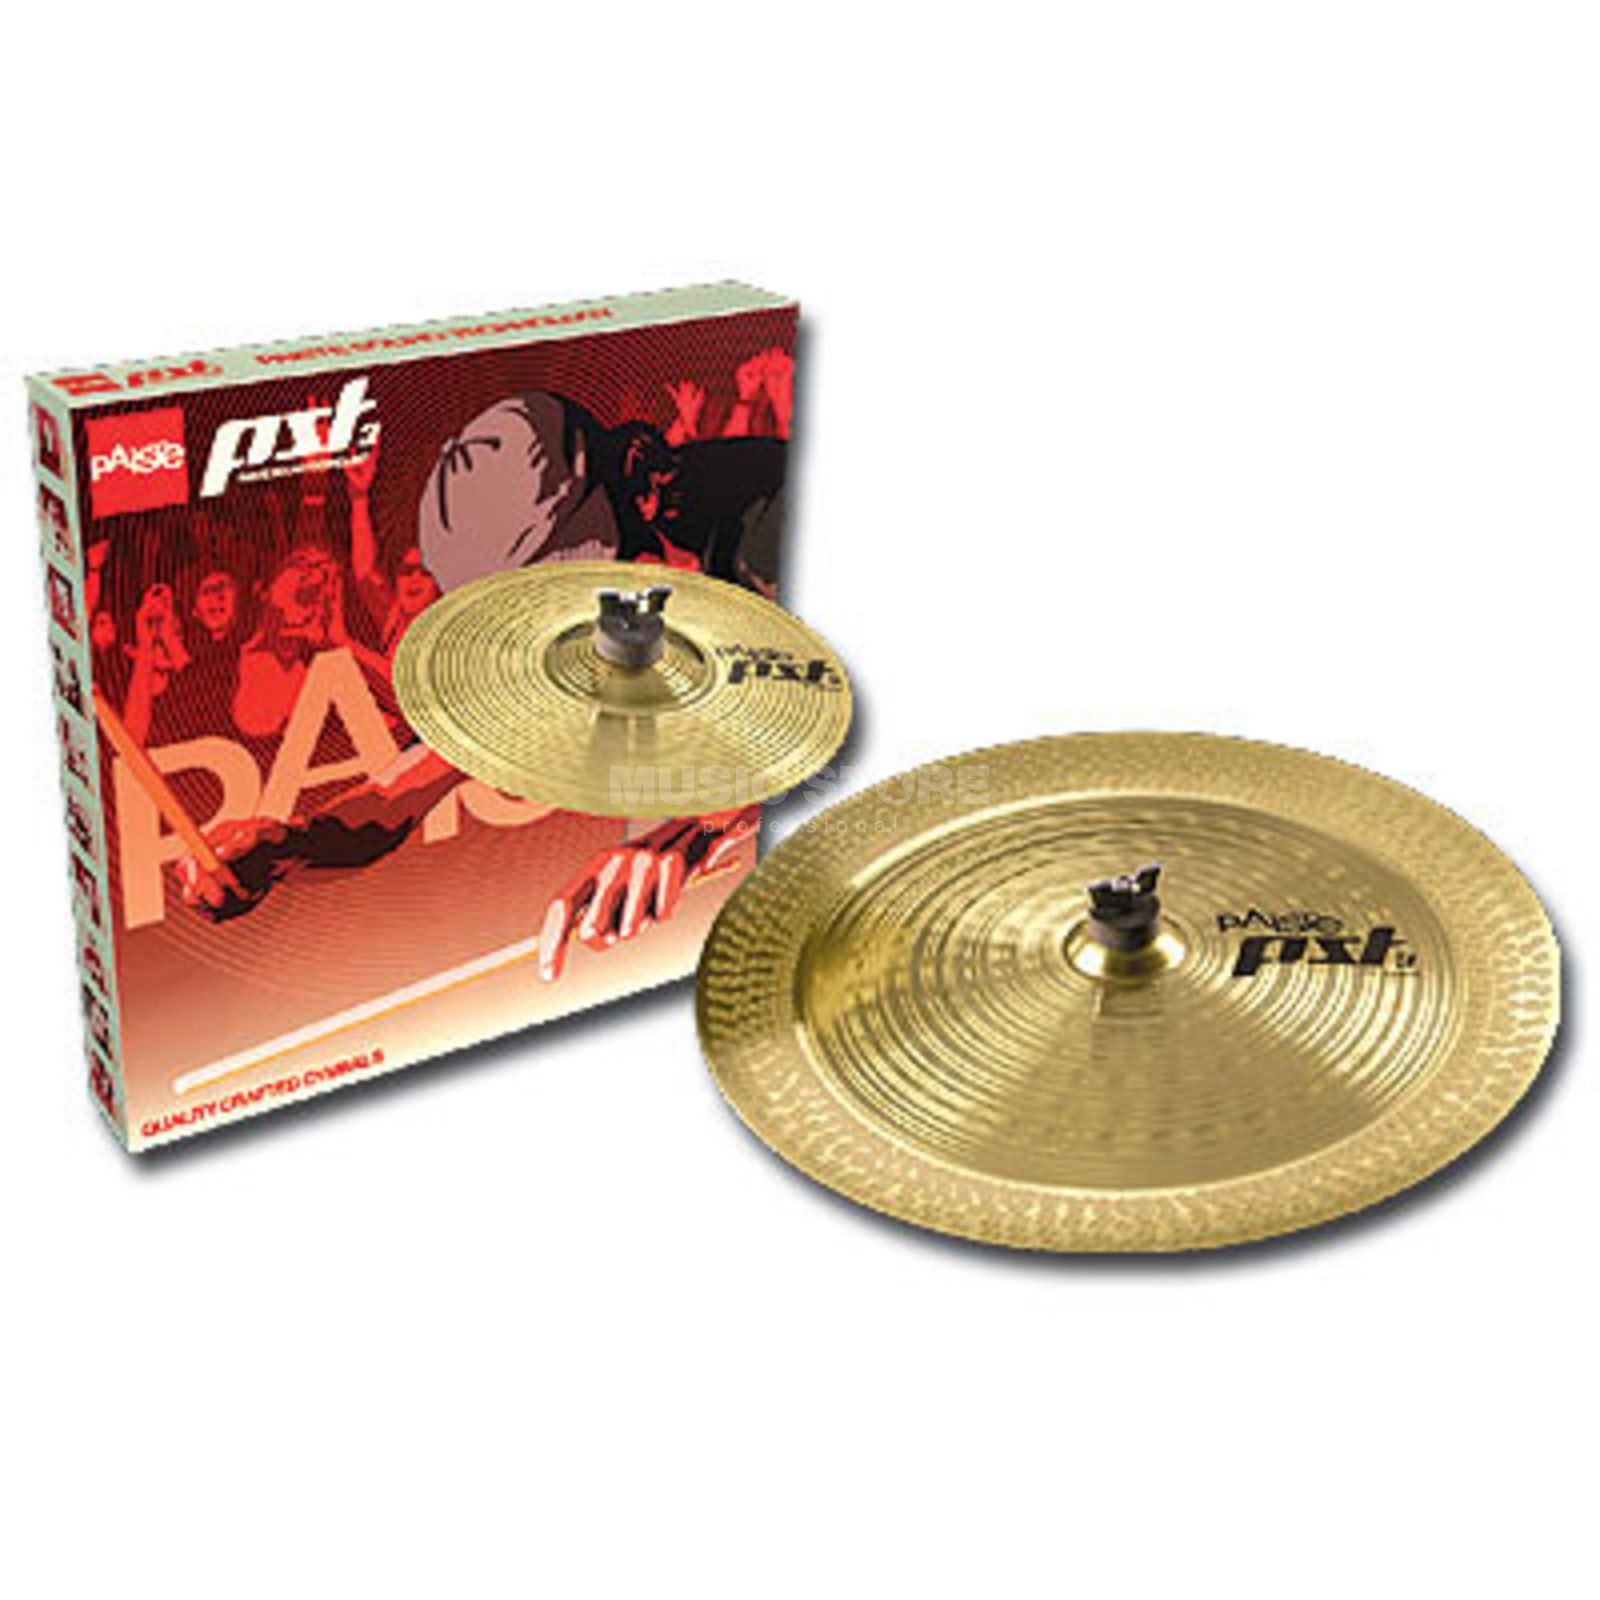 "Paiste PST3 Cymbal Set ""Effects"" 10"" Splash, 18"" China Immagine prodotto"